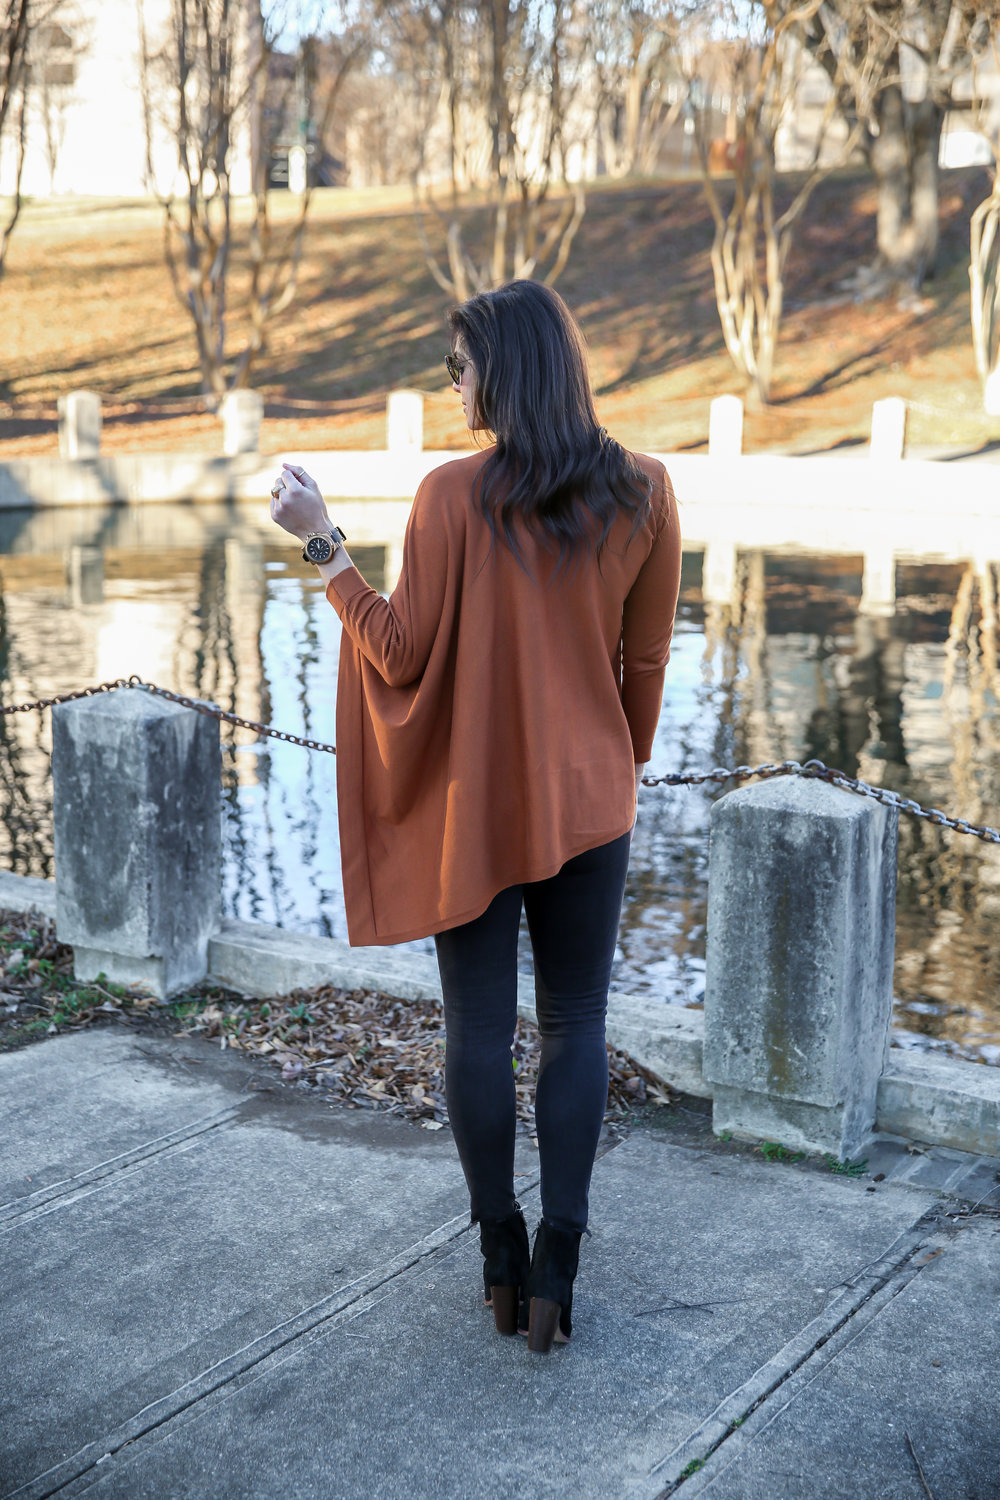 black-bronze-ootd-long-sleeve-batwing-top-lauren-schwaiger-style.jpg